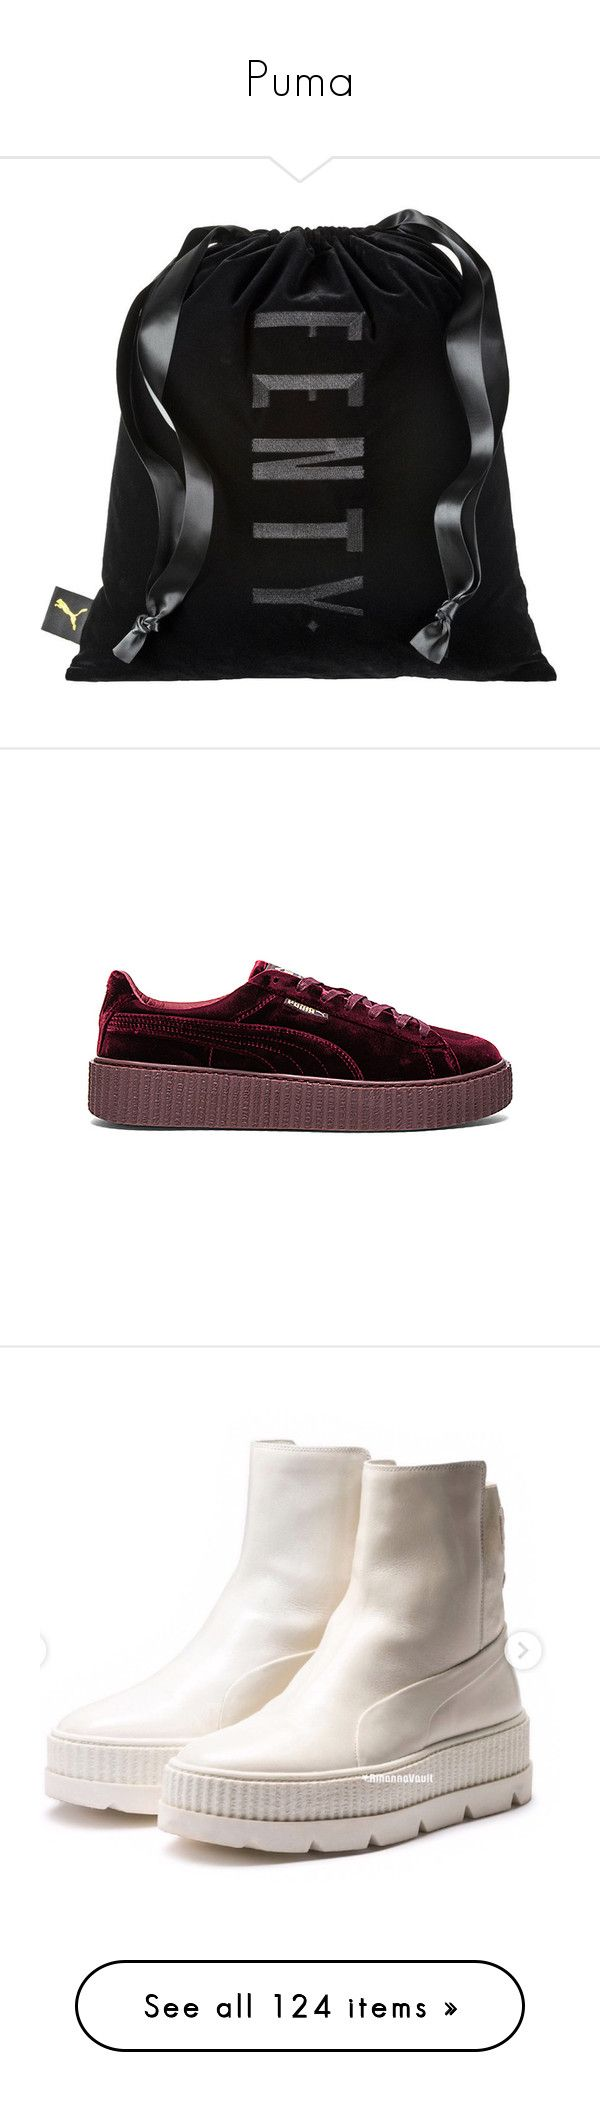 """""""Puma"""" by nasza ❤ liked on Polyvore featuring shoes, sneakers, bags, men's fashion, men's shoes, men's sneakers, mens metallic shoes, puma mens sneakers, mens lace up shoes and mens creeper shoes"""